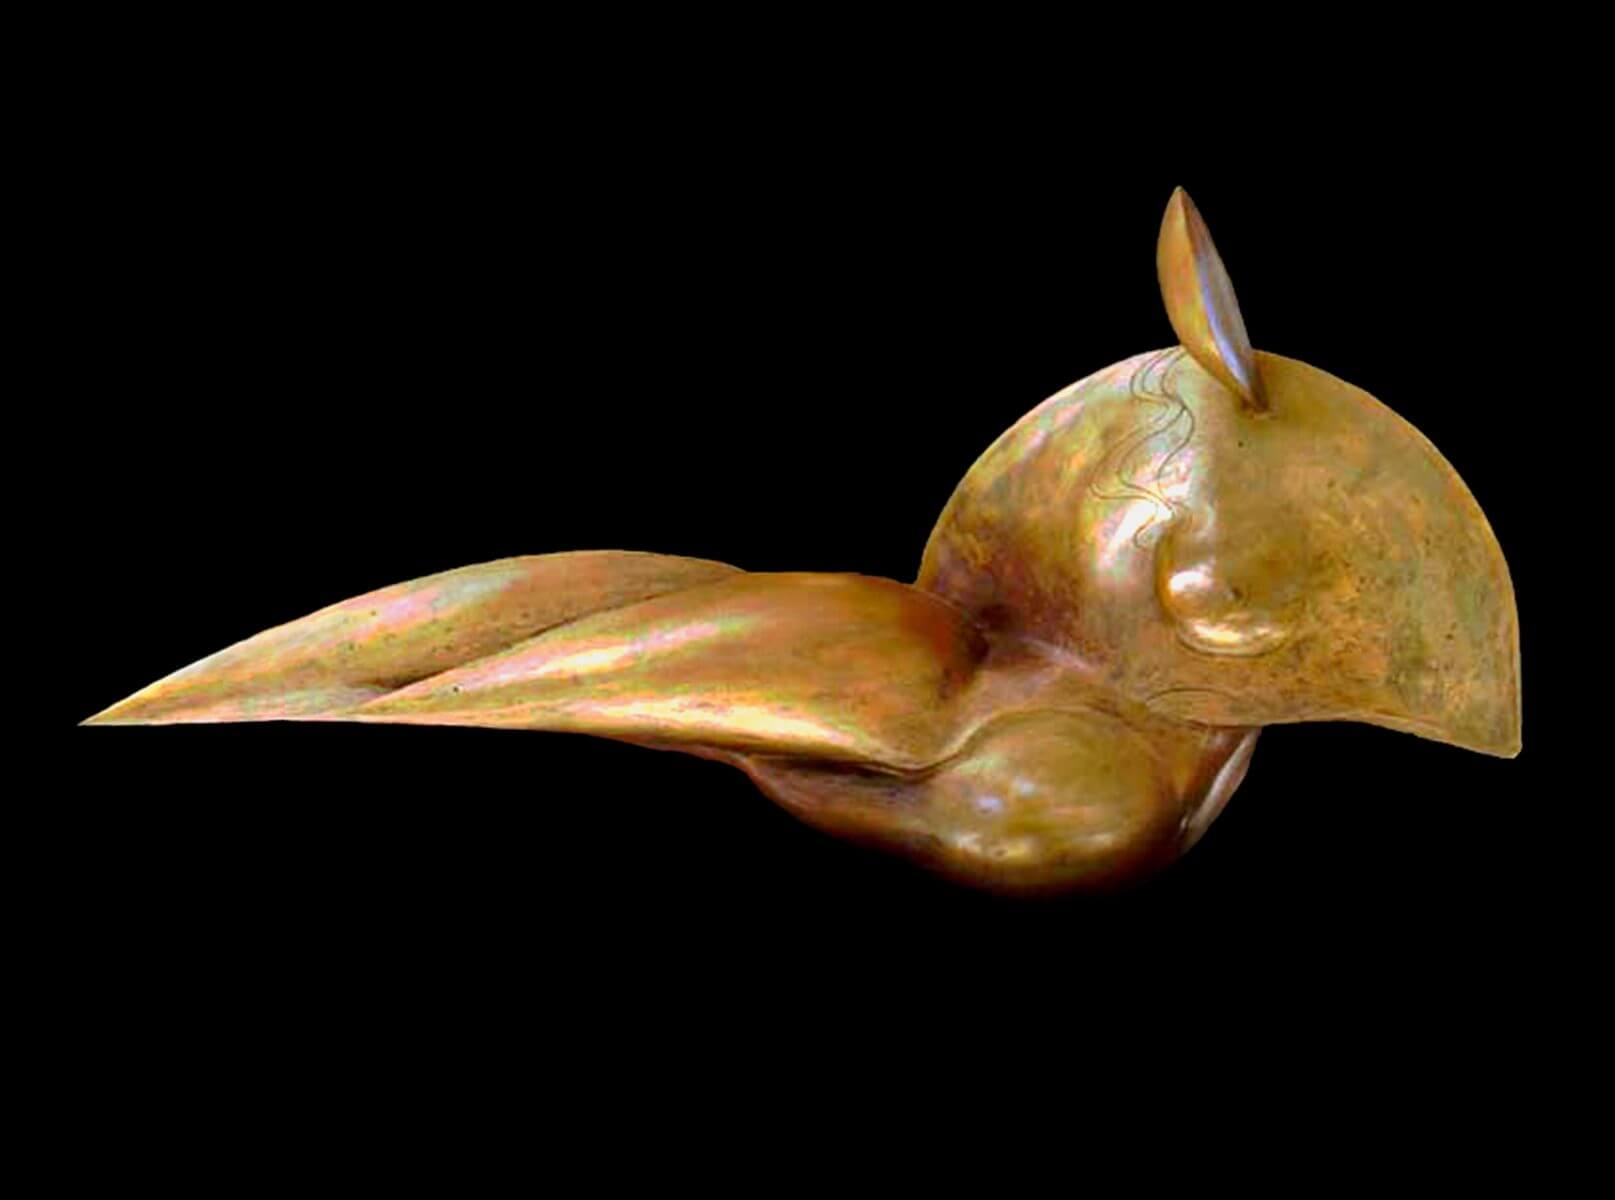 Mediterranean a figurative abstract bronze sculpture by Andrew DeVries